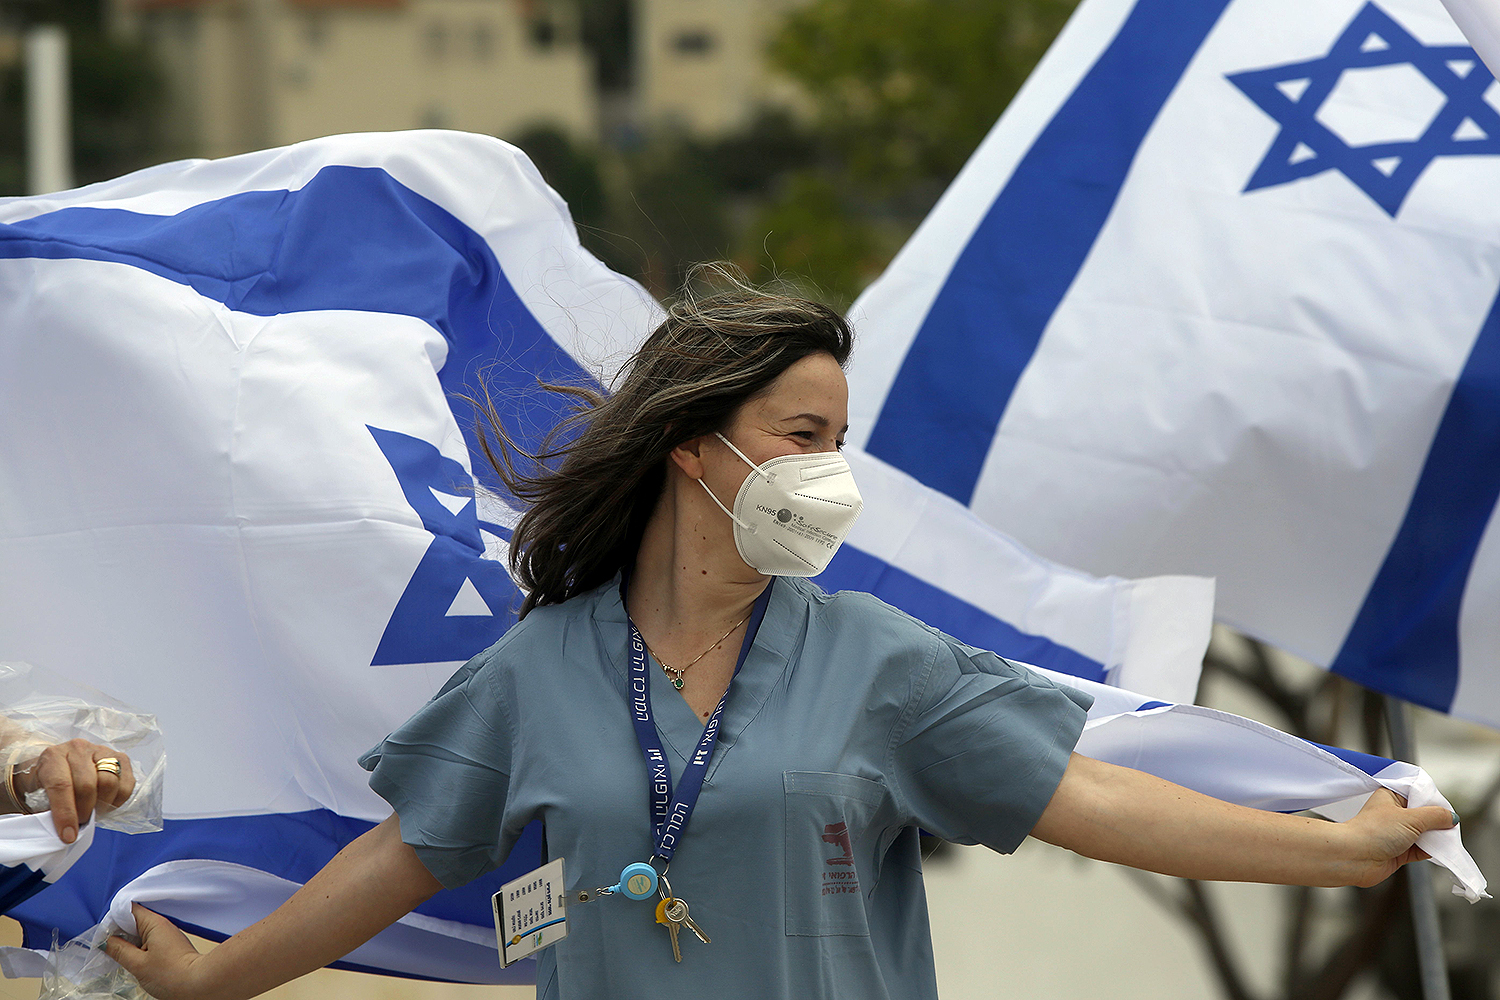 Health care workers at Ziv Medical Center in the northern city of Safed wave flags as Israeli Air Force jets fly over the hospital to mark Israel's Independence Day (Yom Ha'atzmaut) on April 29. JALAA MAREY/AFP via Getty Images